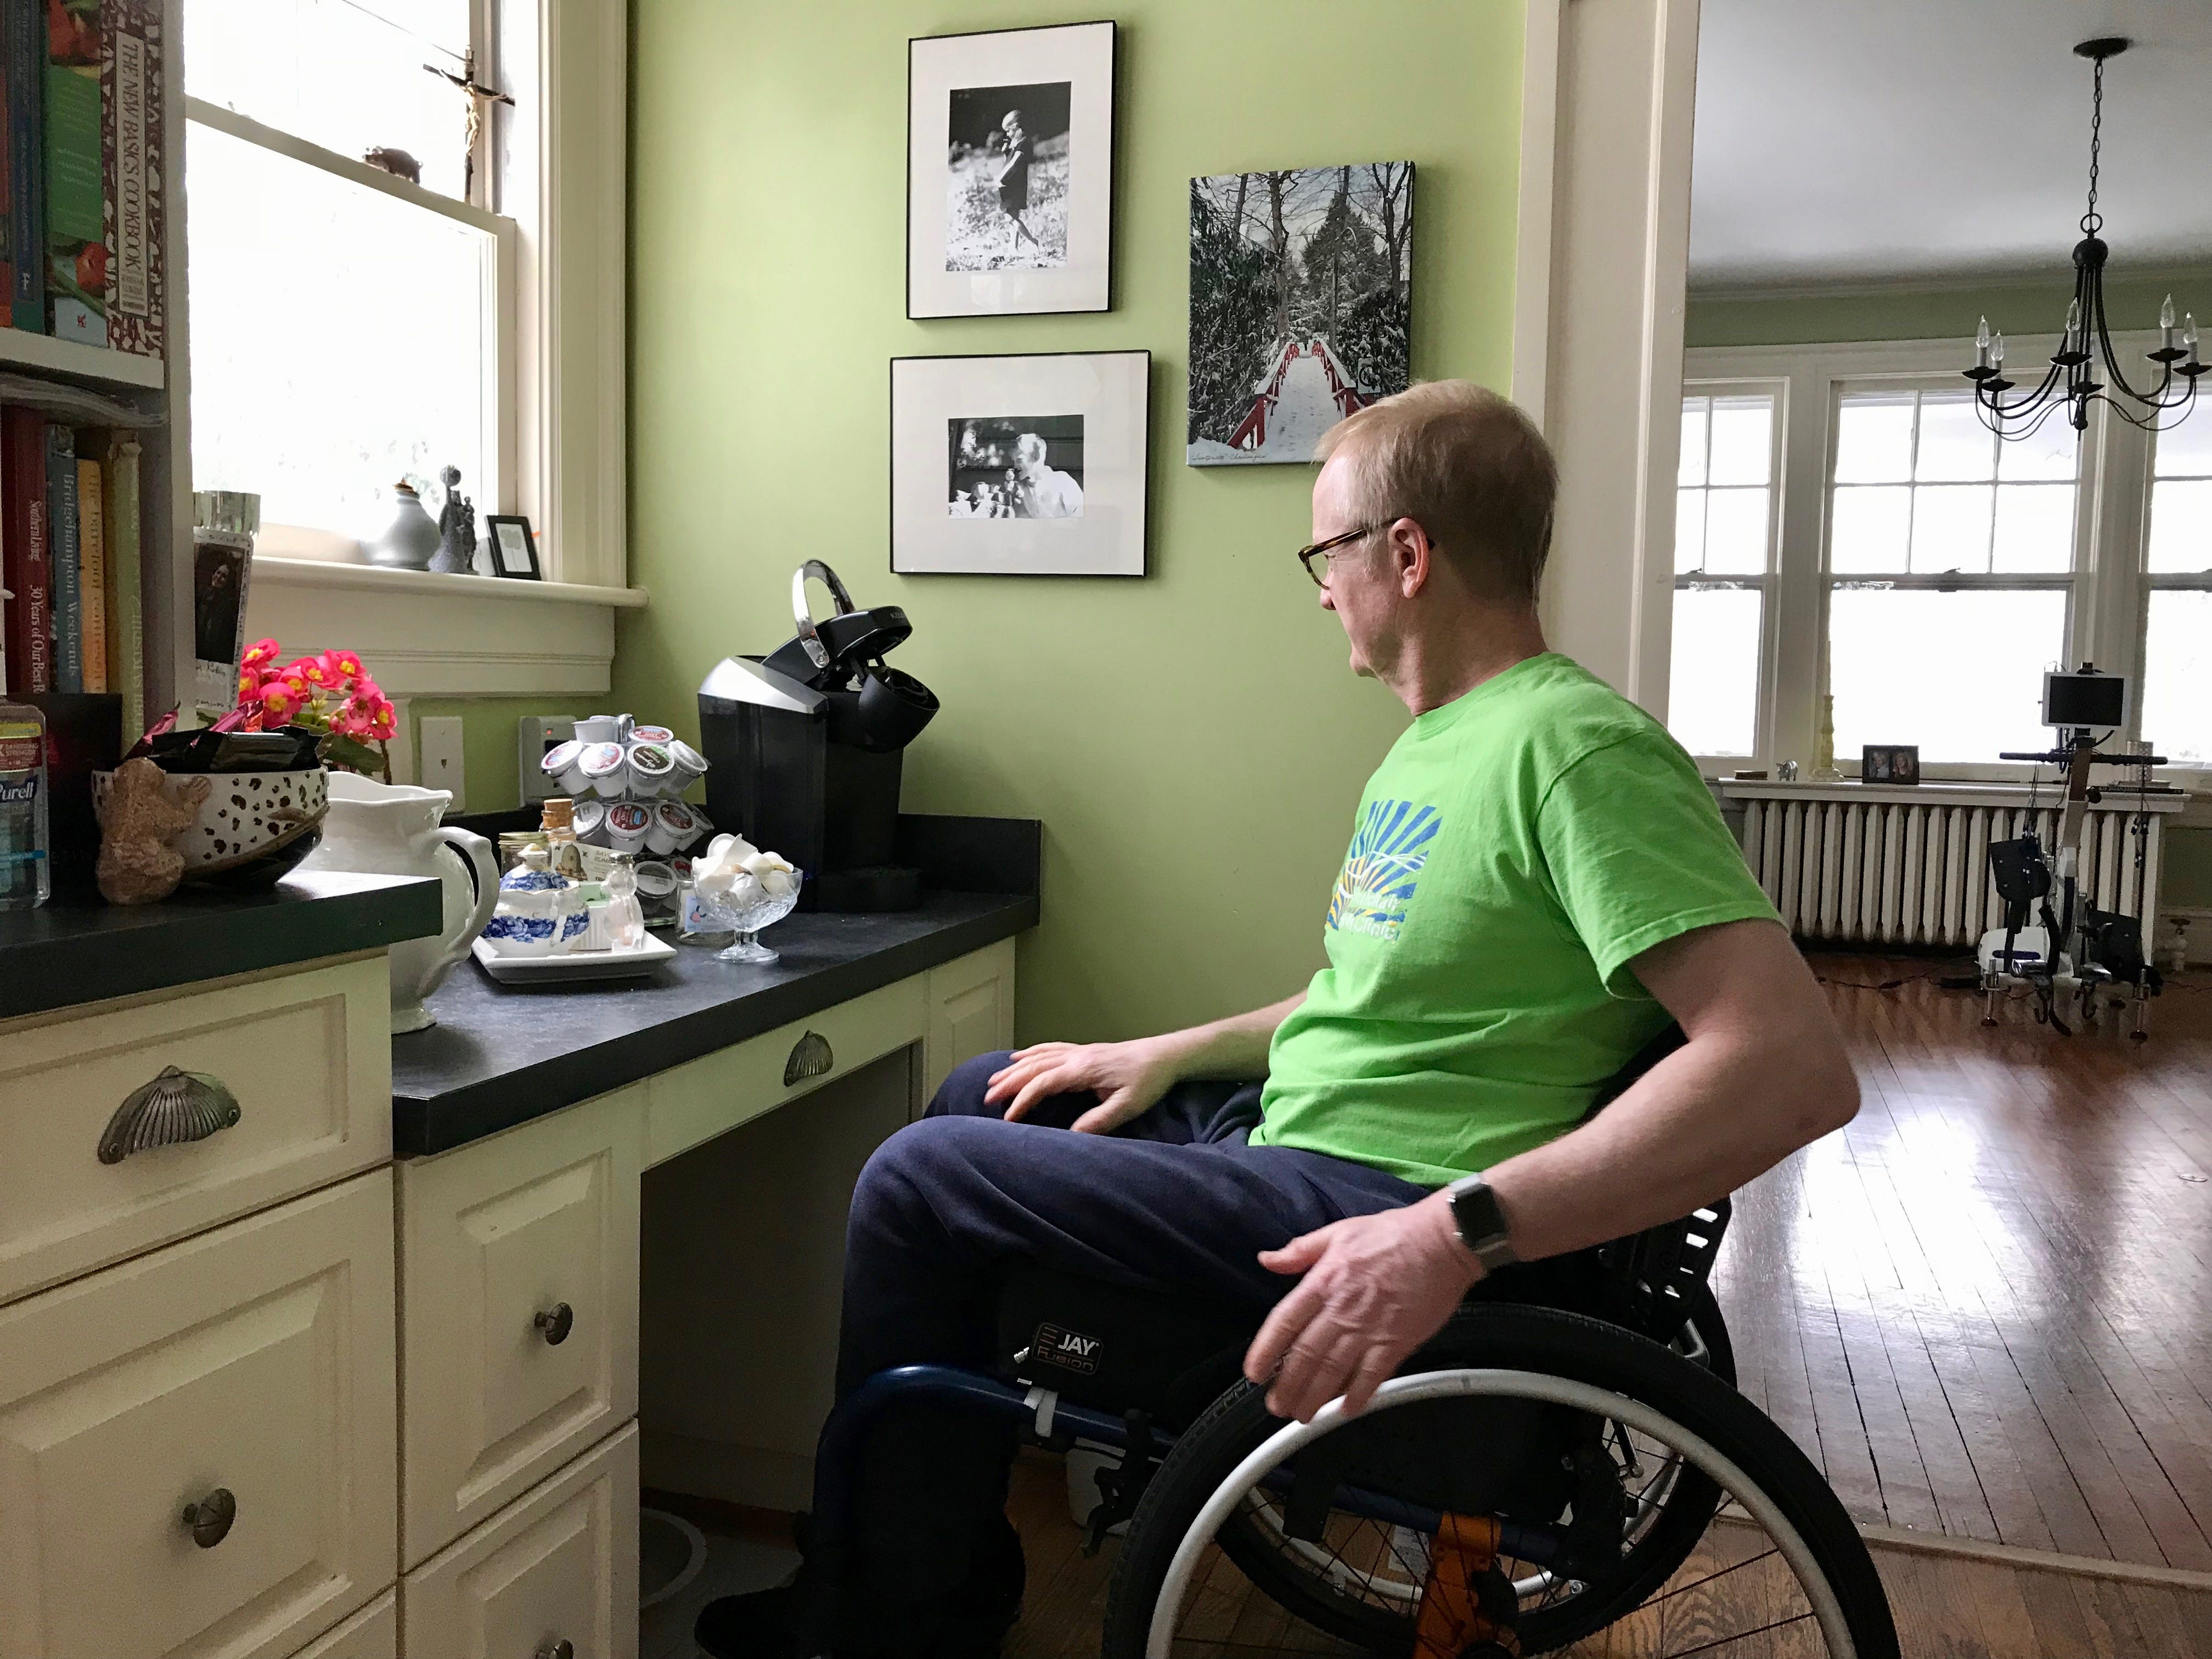 Wilson Workforce and Rehabilitation Center in Fishersville came to Dr. Robert Kyler's home to give suggestions, some as simple as moving the coffee maker to a lower table in the kitchen. Photographed in his home in Staunton, Virginia, on Friday, March 8, 2019.